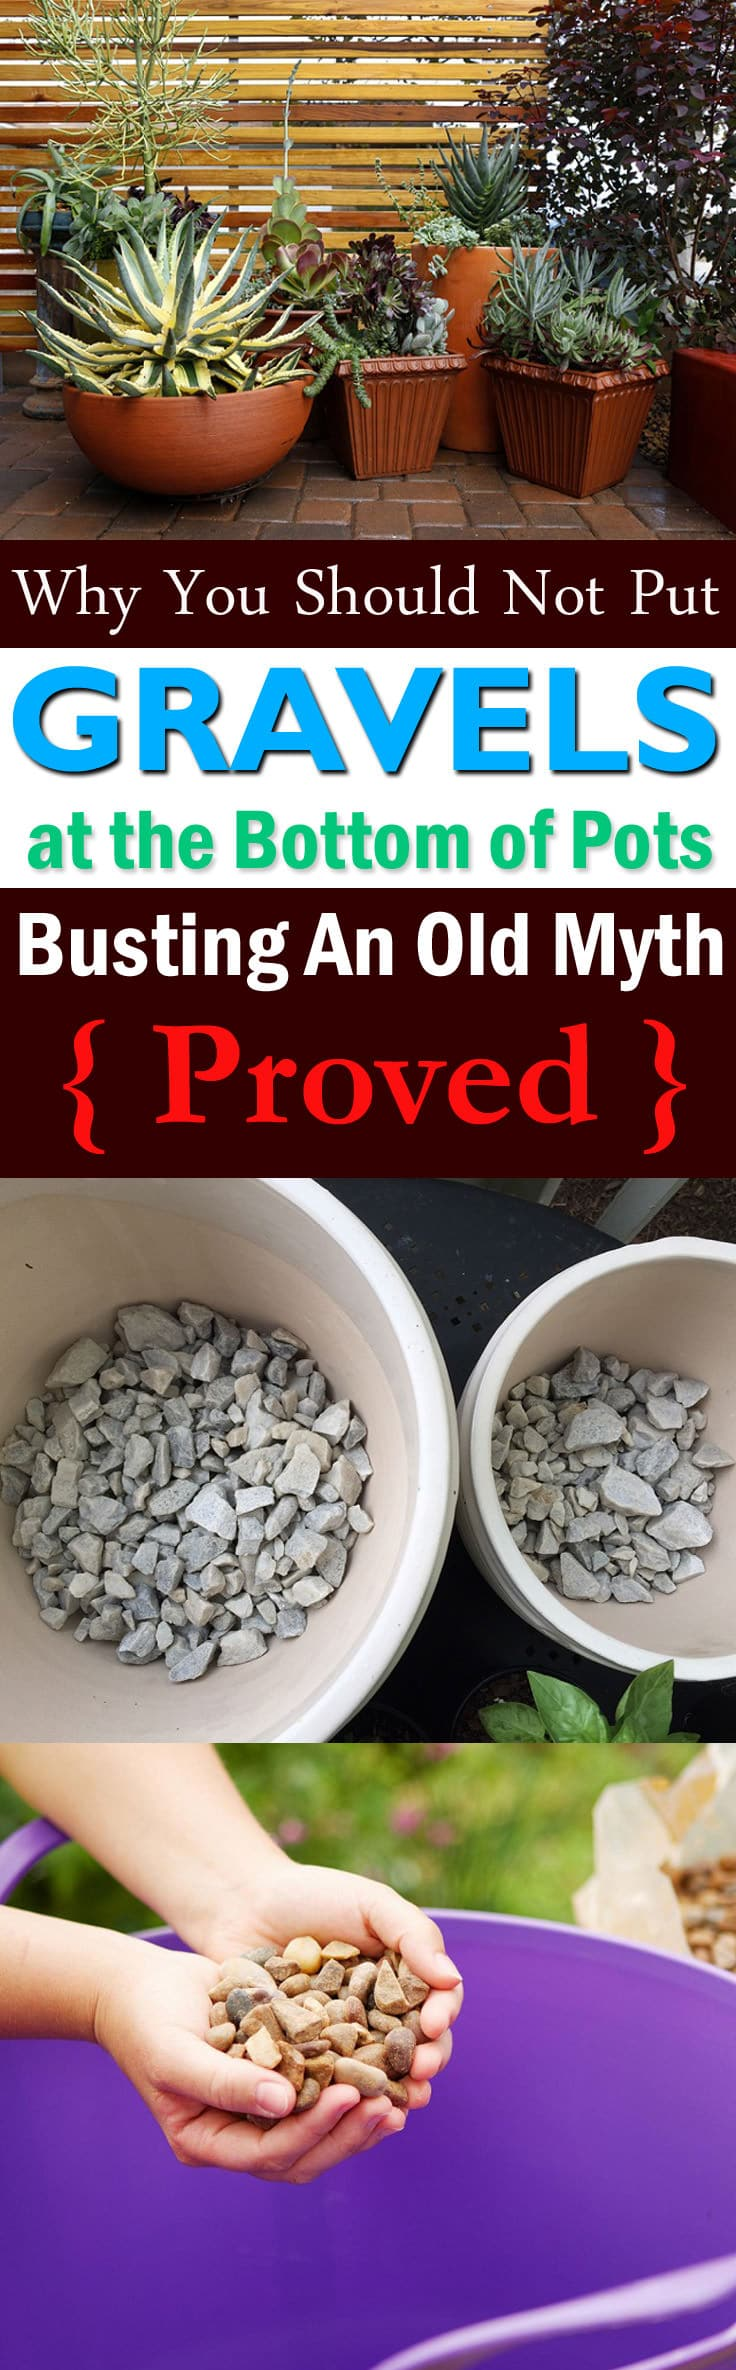 After reading this post you'll never put gravel or other coarse materials at the bottom of pots. Must find out, WHY?